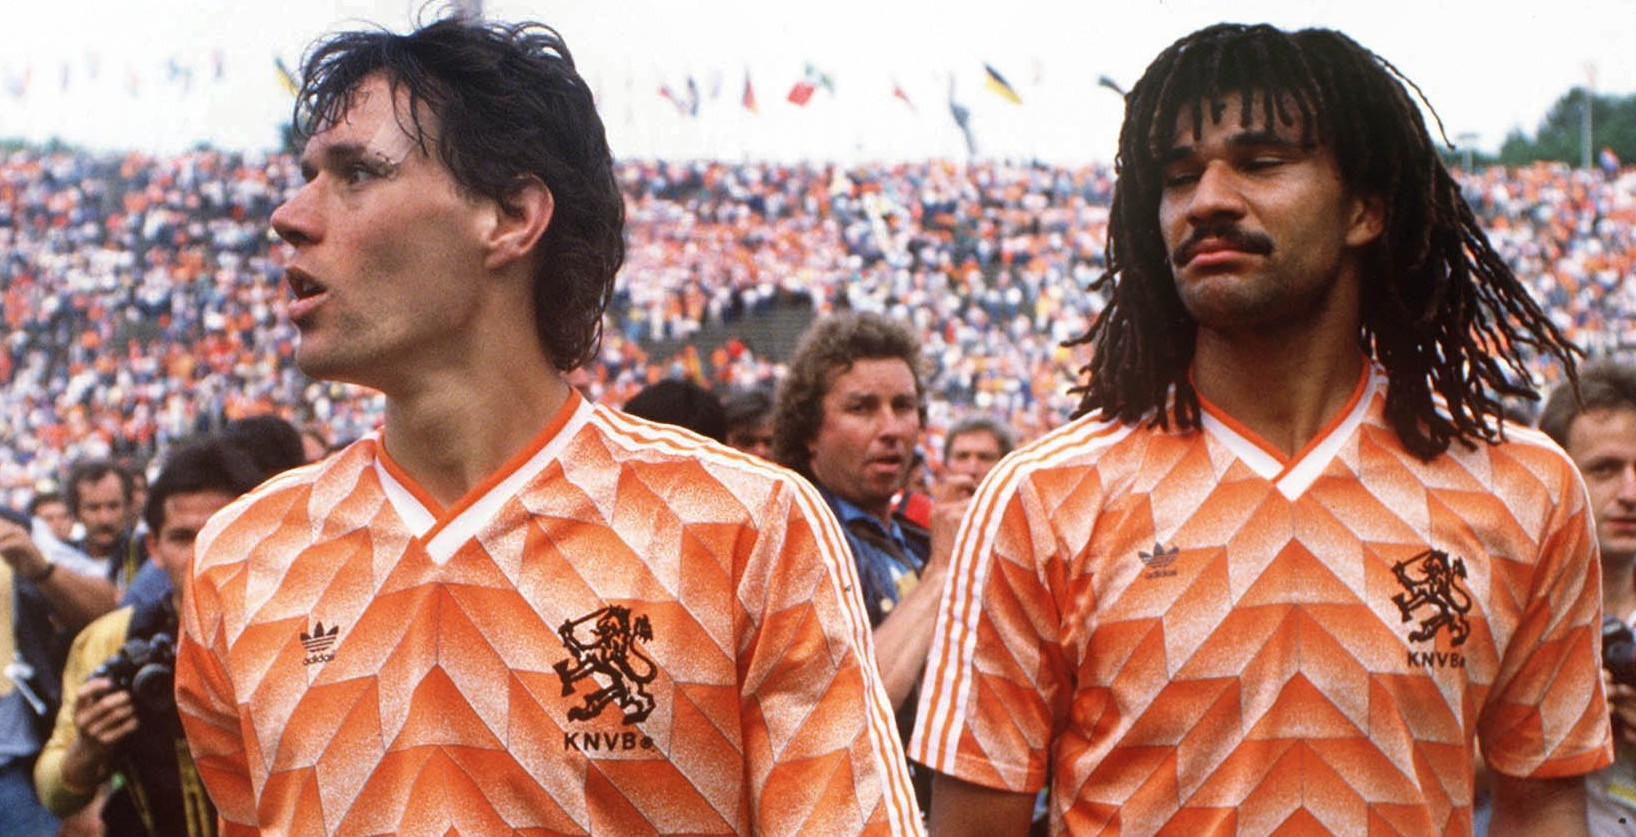 56230_Basten_Gullit_1988_Final_Cs_1